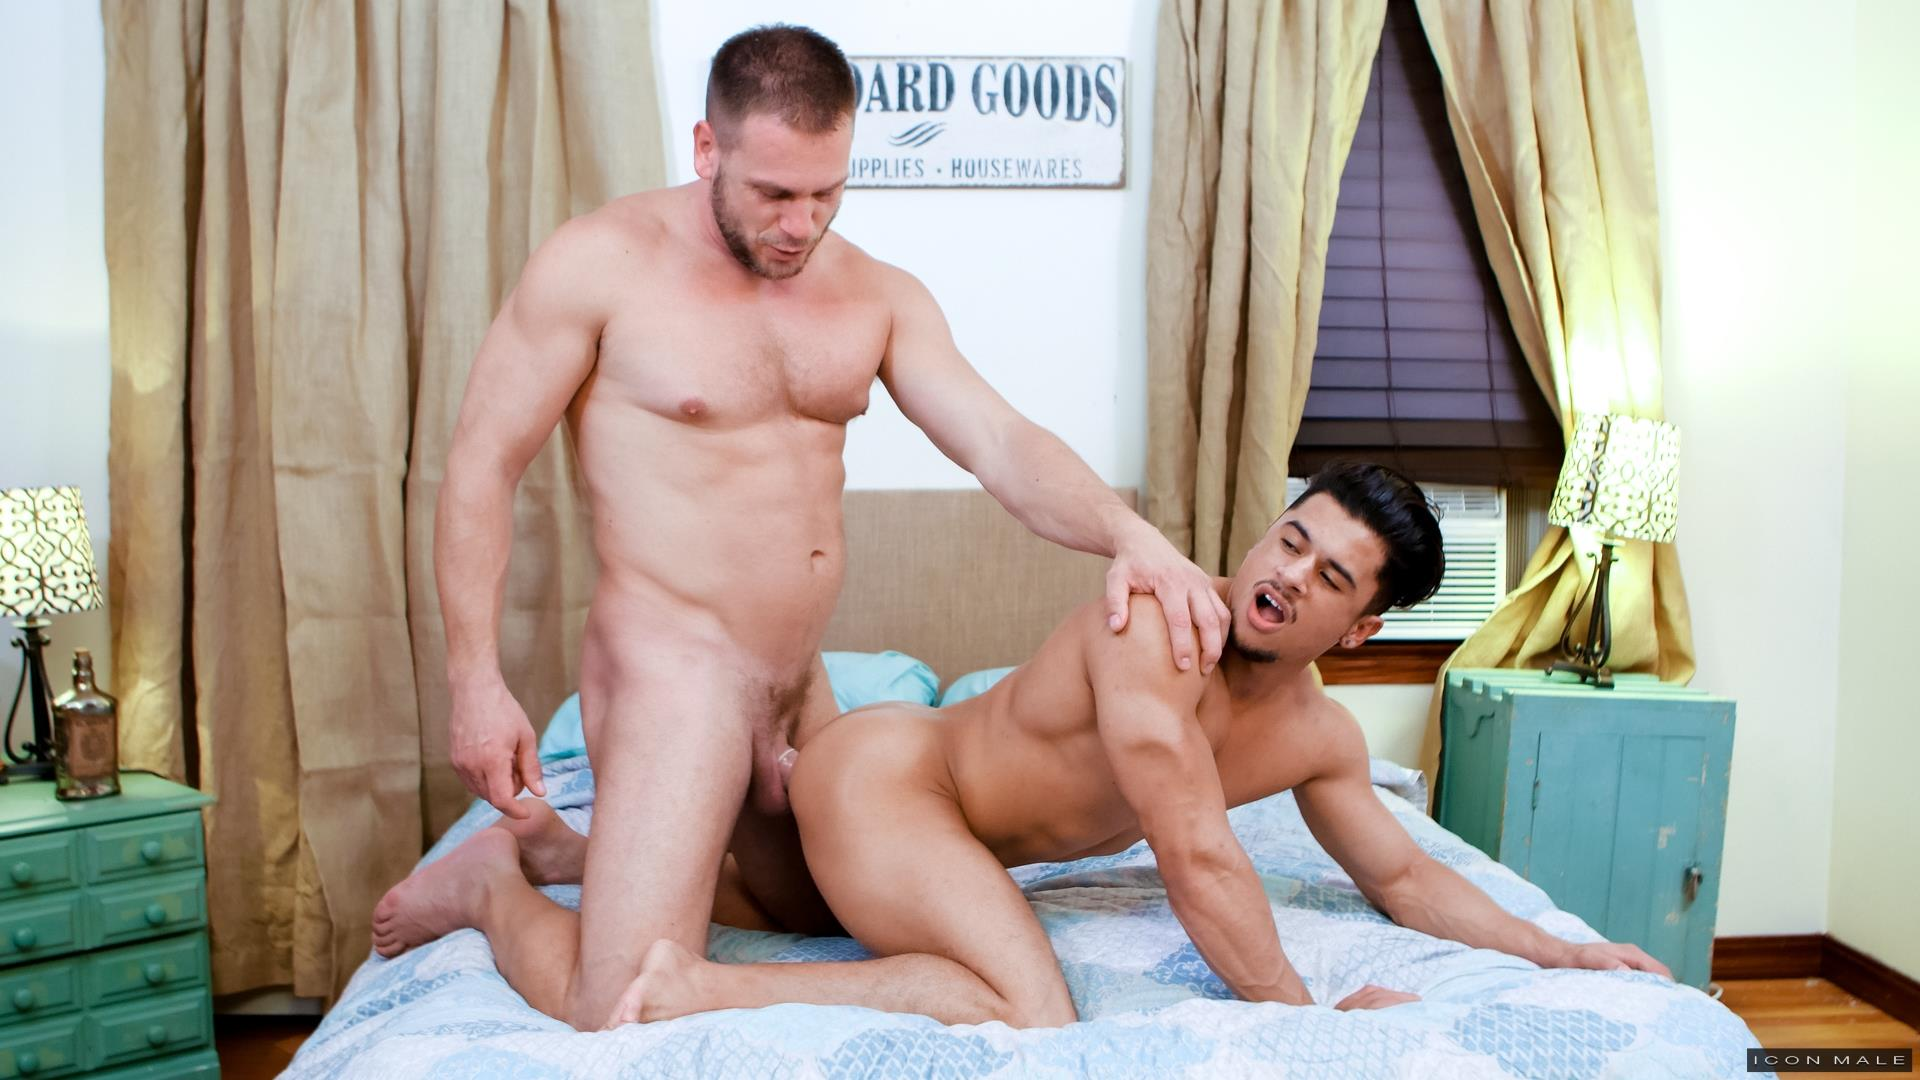 Icon-Male-Armond-Rizzo-and-Hans-Berlin-Gay-Guys-Fucking-10 Armond Rizzo Gets Fucked By Big Uncut Daddy Dick Hans Berlin